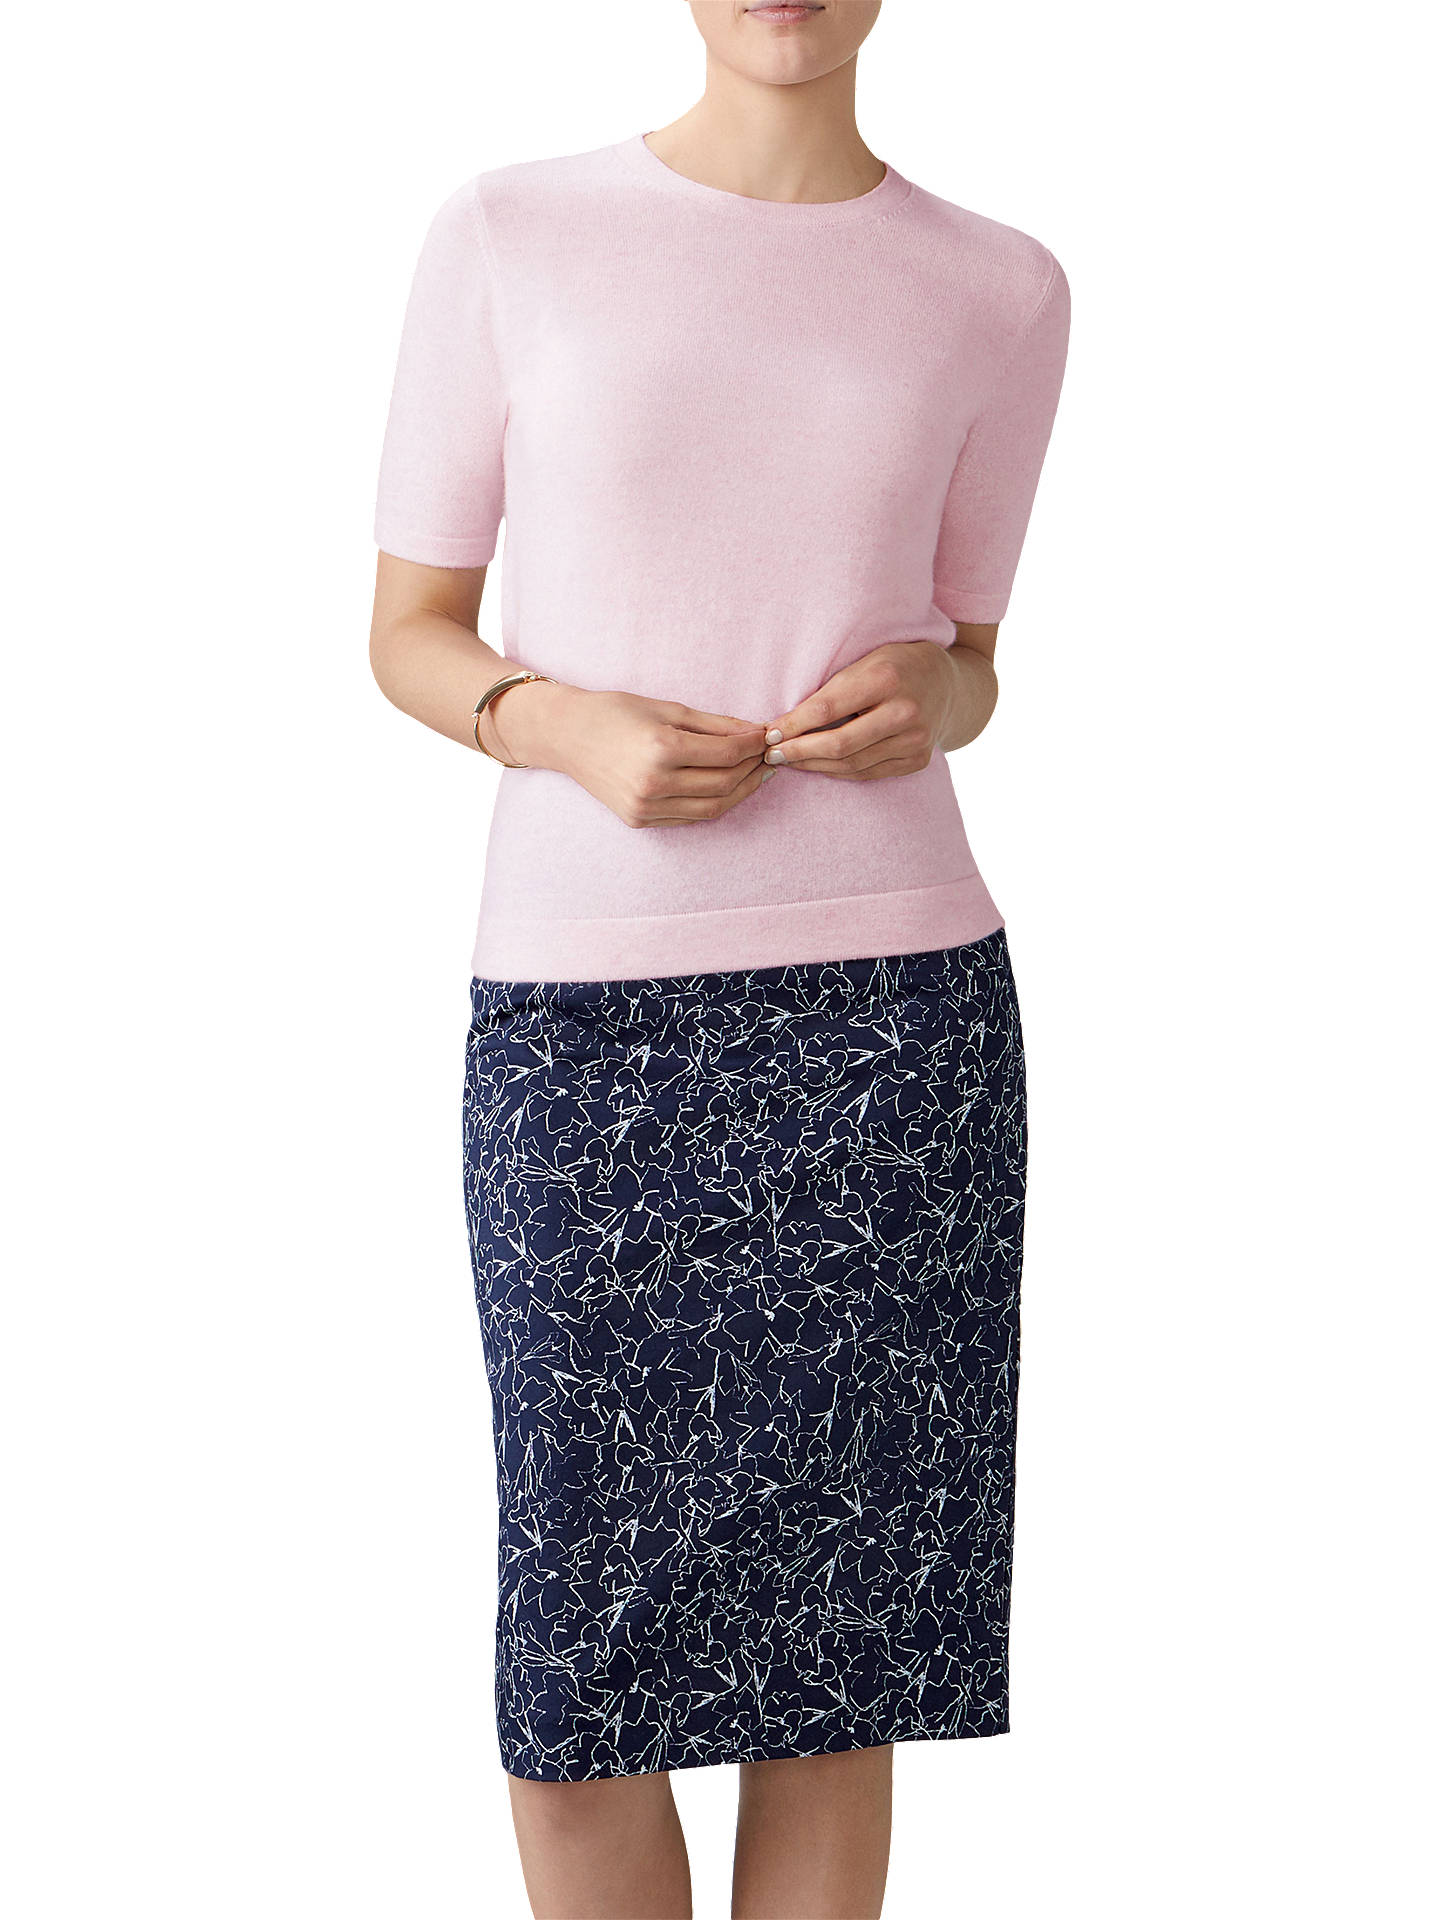 bb39862c30 Buy Pure Collection Floral Print Pencil Skirt, Navy, 8 Online at  johnlewis.com ...